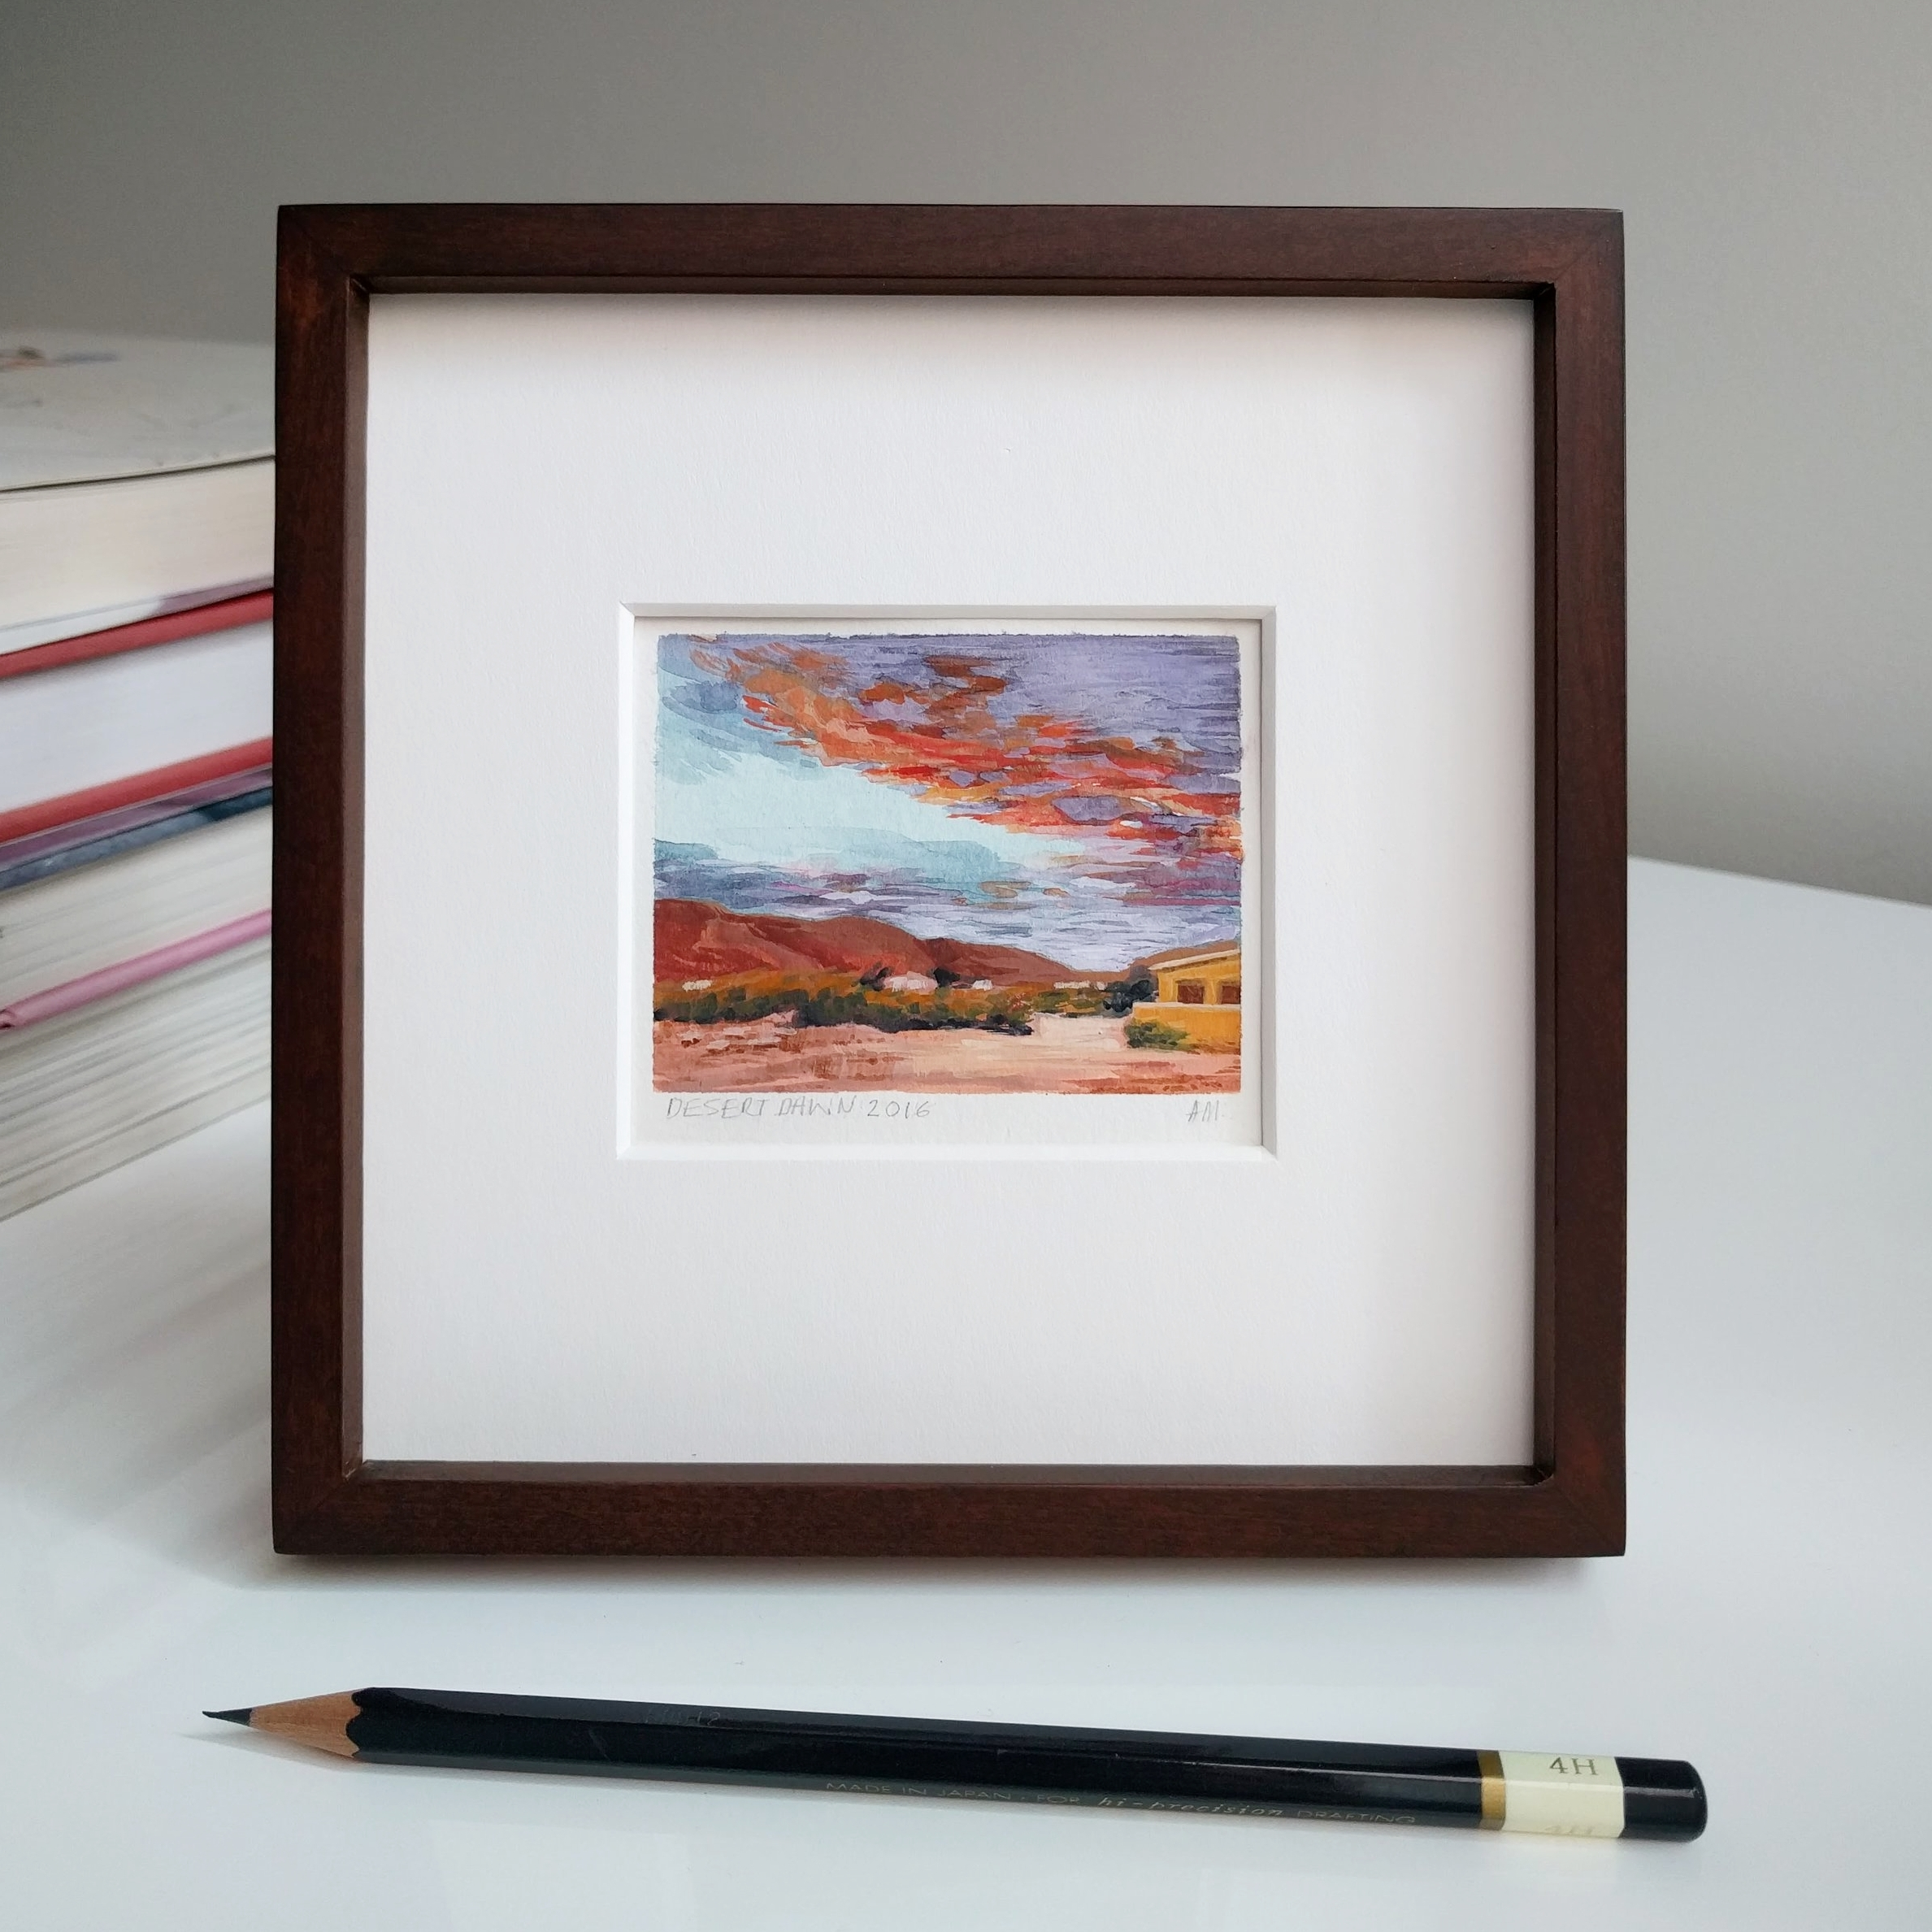 My Small Paintings miniature framed watercolour tiny art of pink sunset in the California Desert 29 Palms Inn